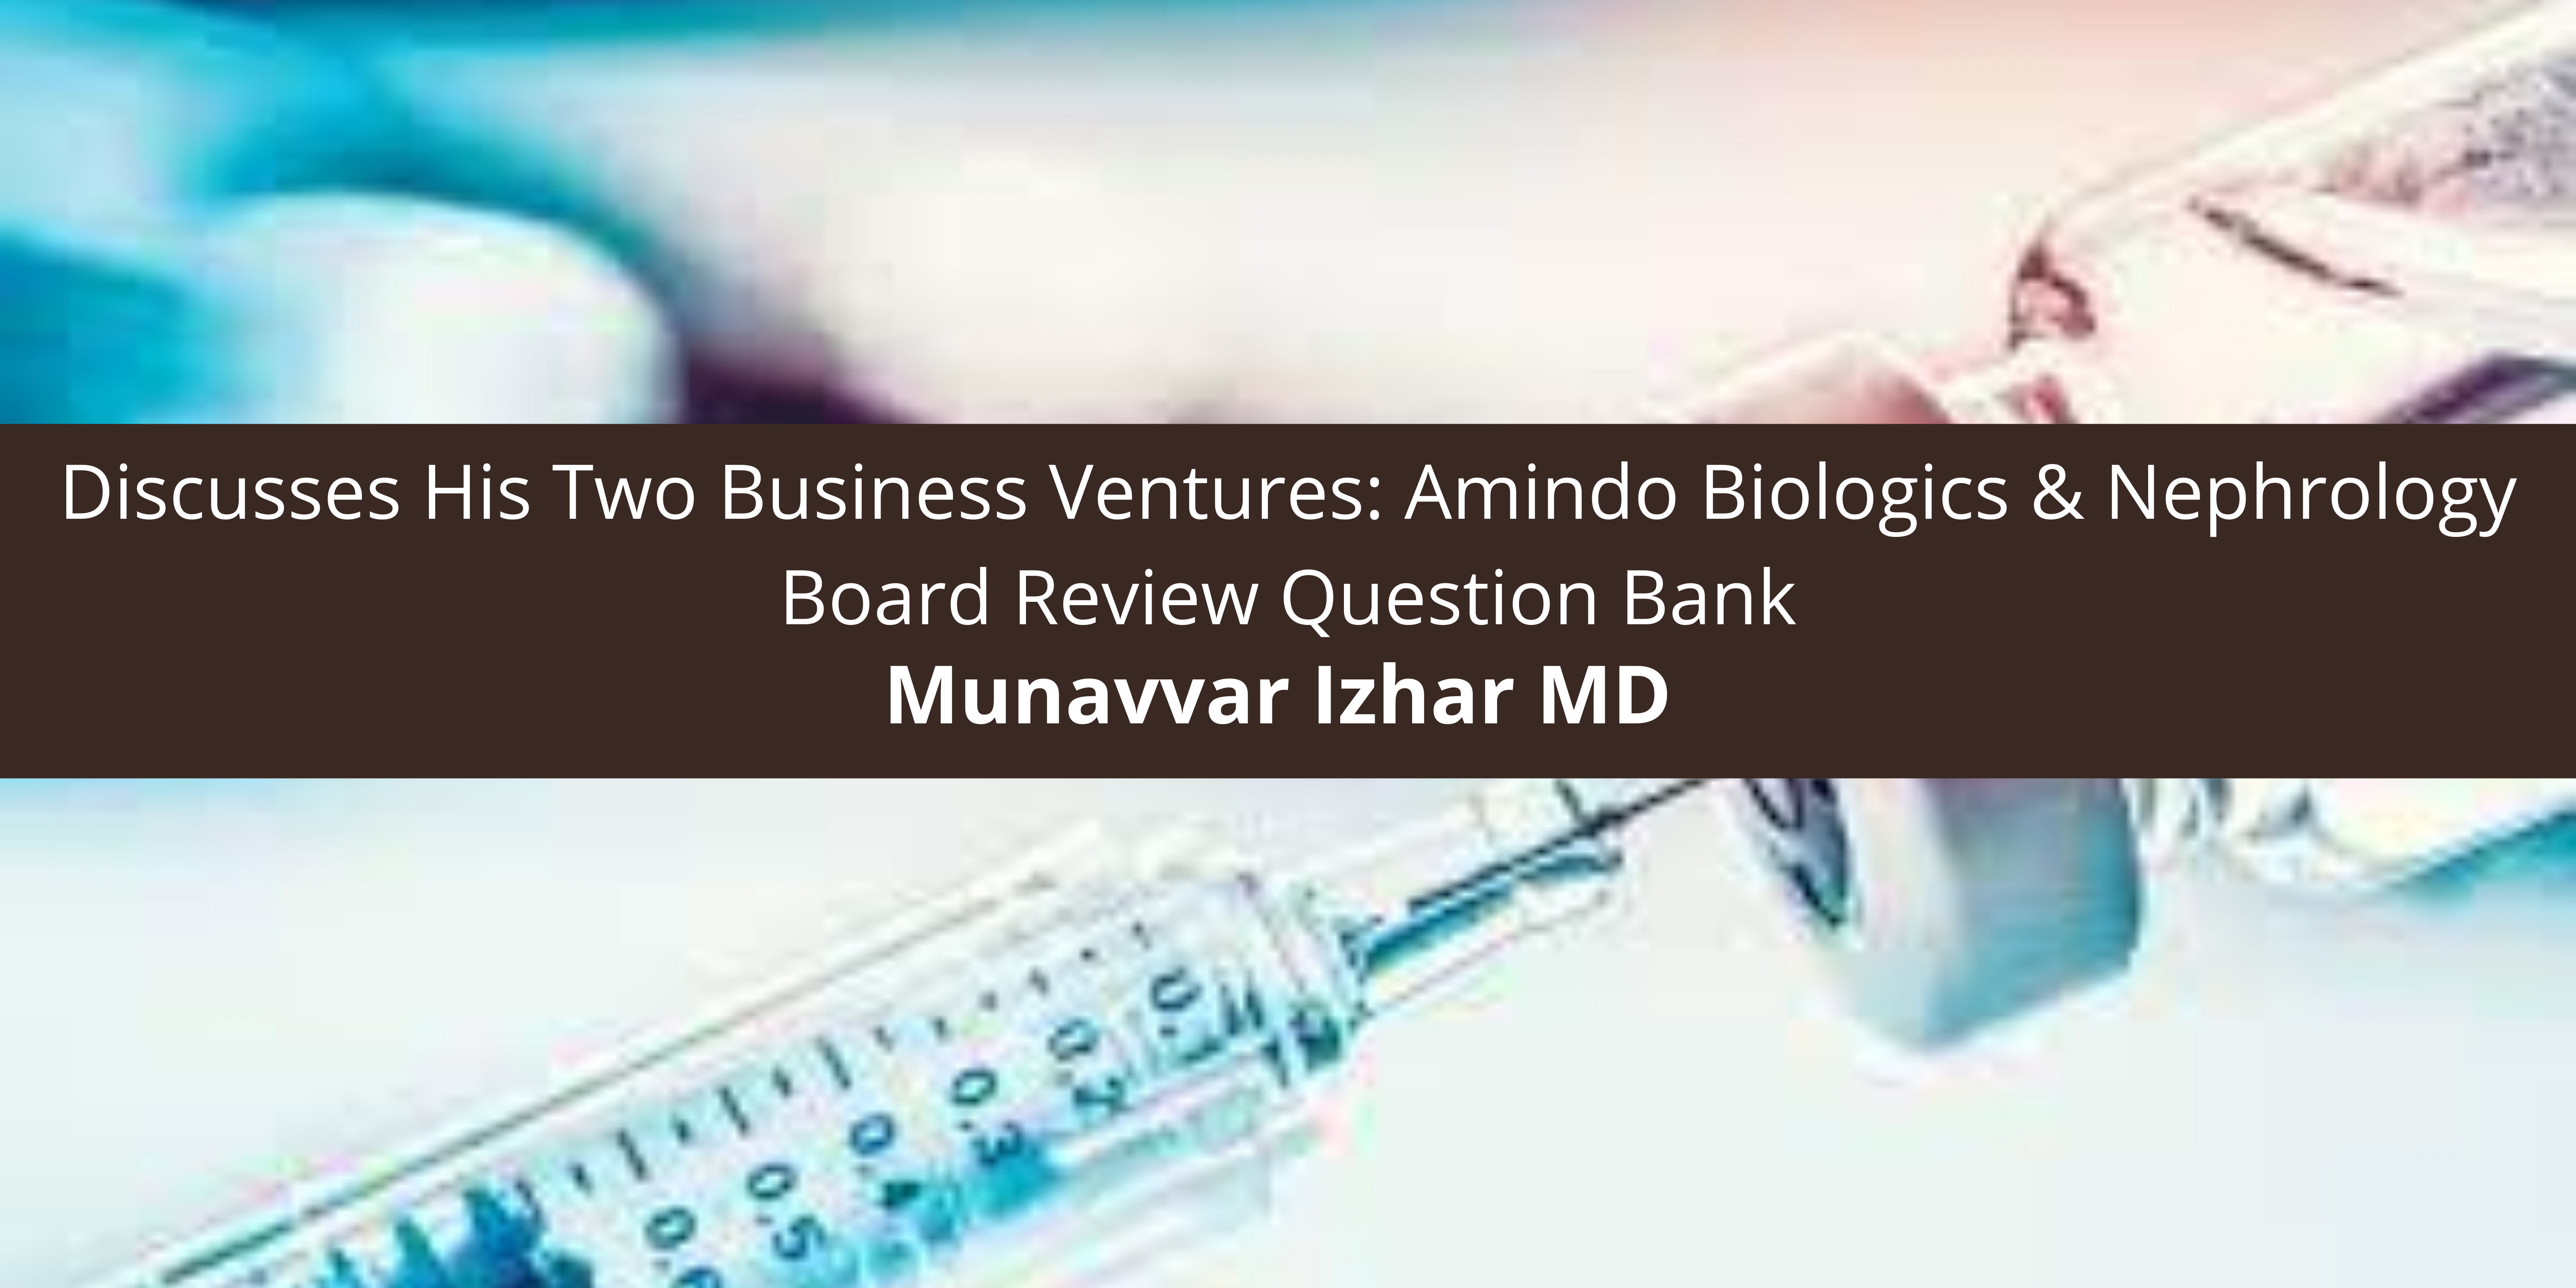 Munavvar Izhar MD Discusses His Two Business Ventures: Amindo Biologics & Nephrology Board Review Question Bank